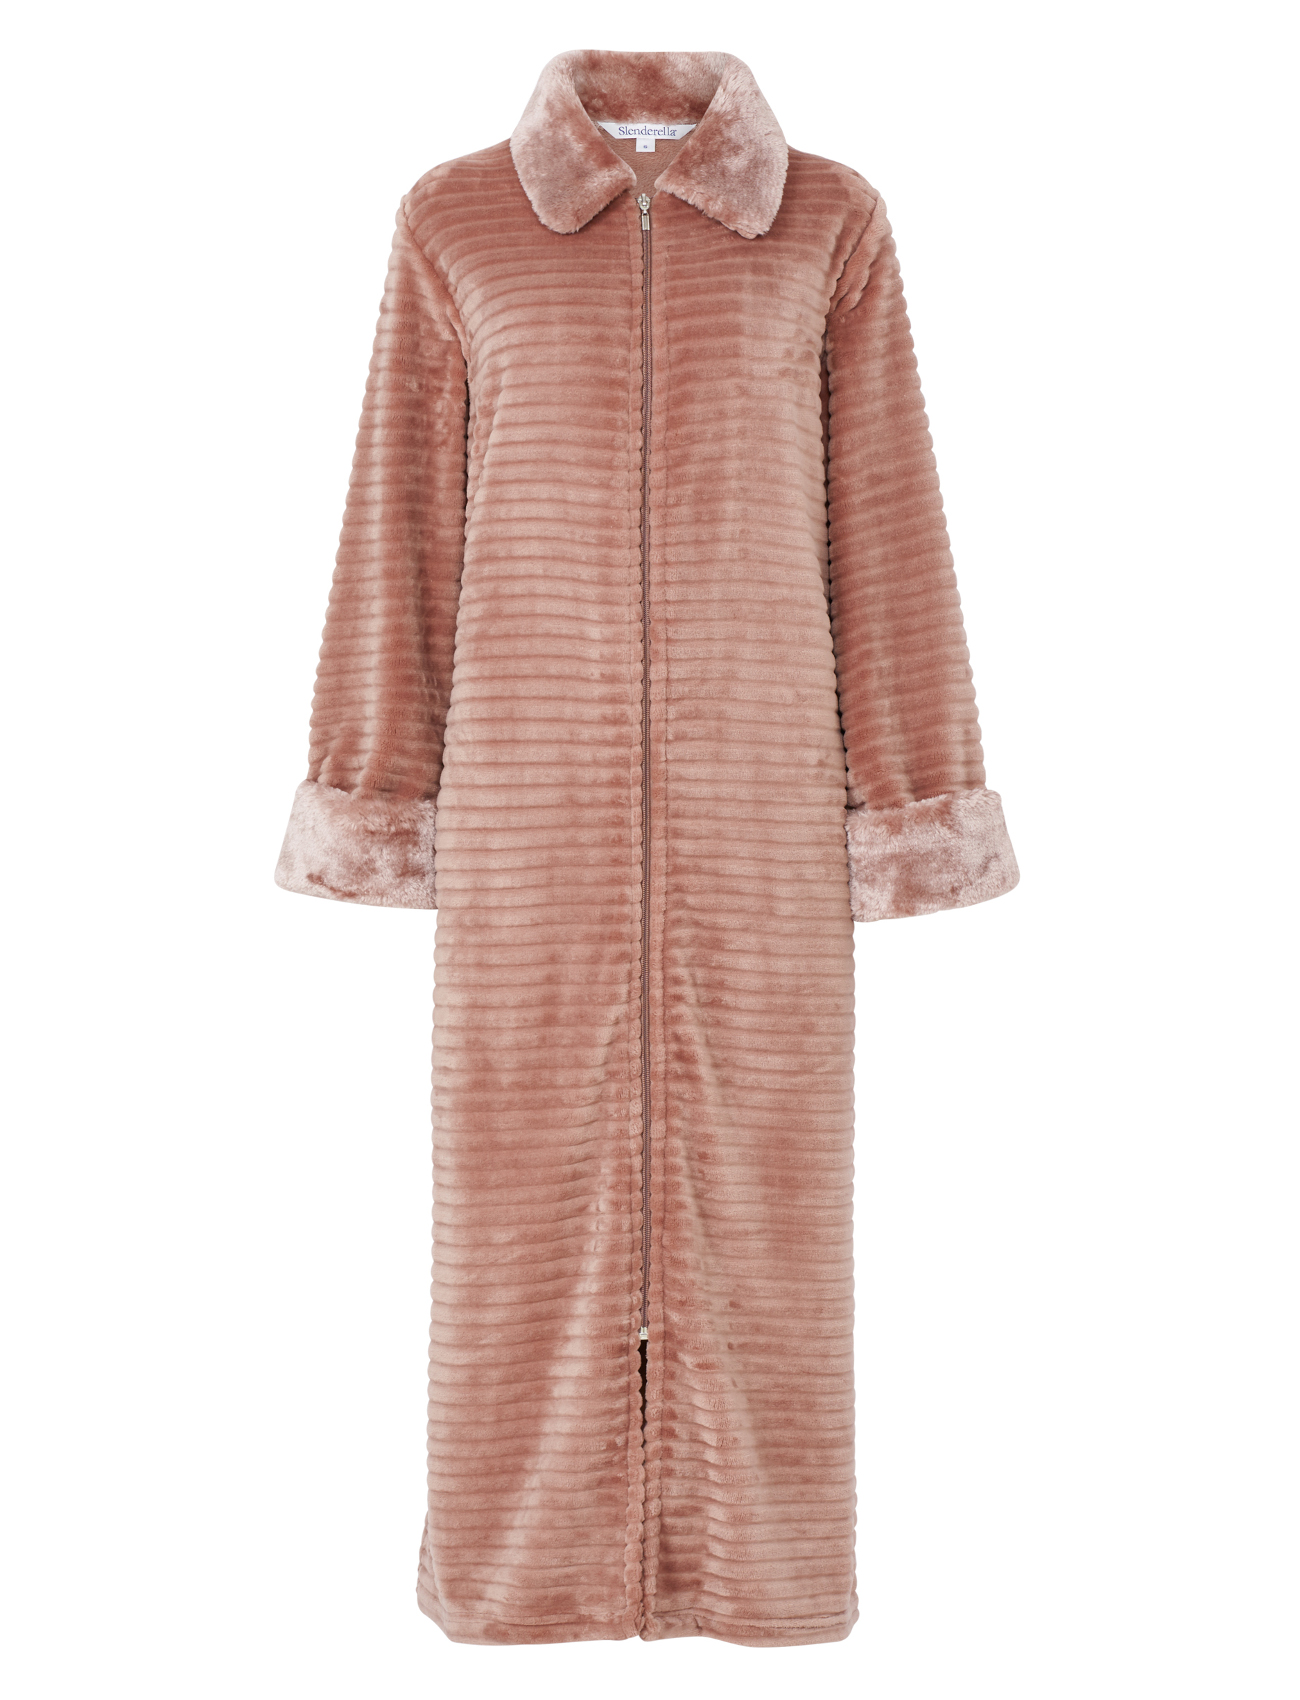 Ladies Button Up Dressing Gown - Home Decorating Ideas & Interior Design